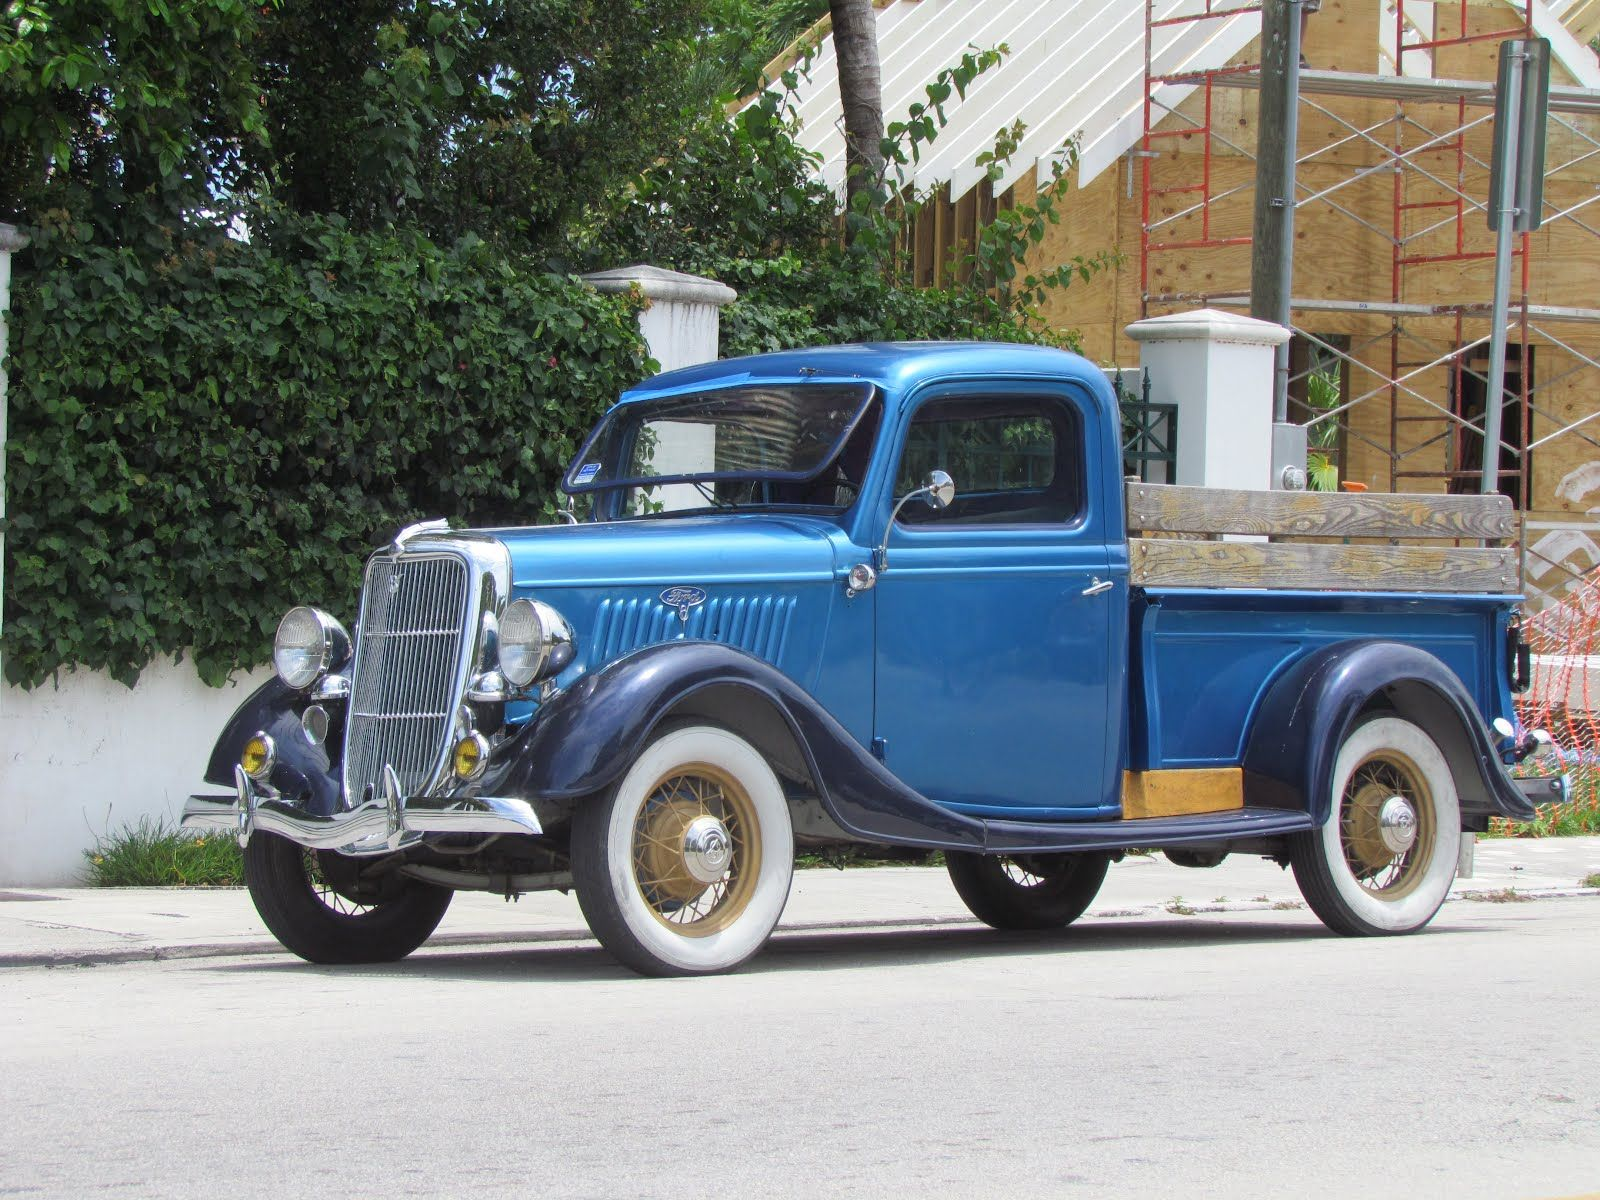 Old Classic Ford 4 Sale | Old Ford Truck in Key West, Florida on May ...